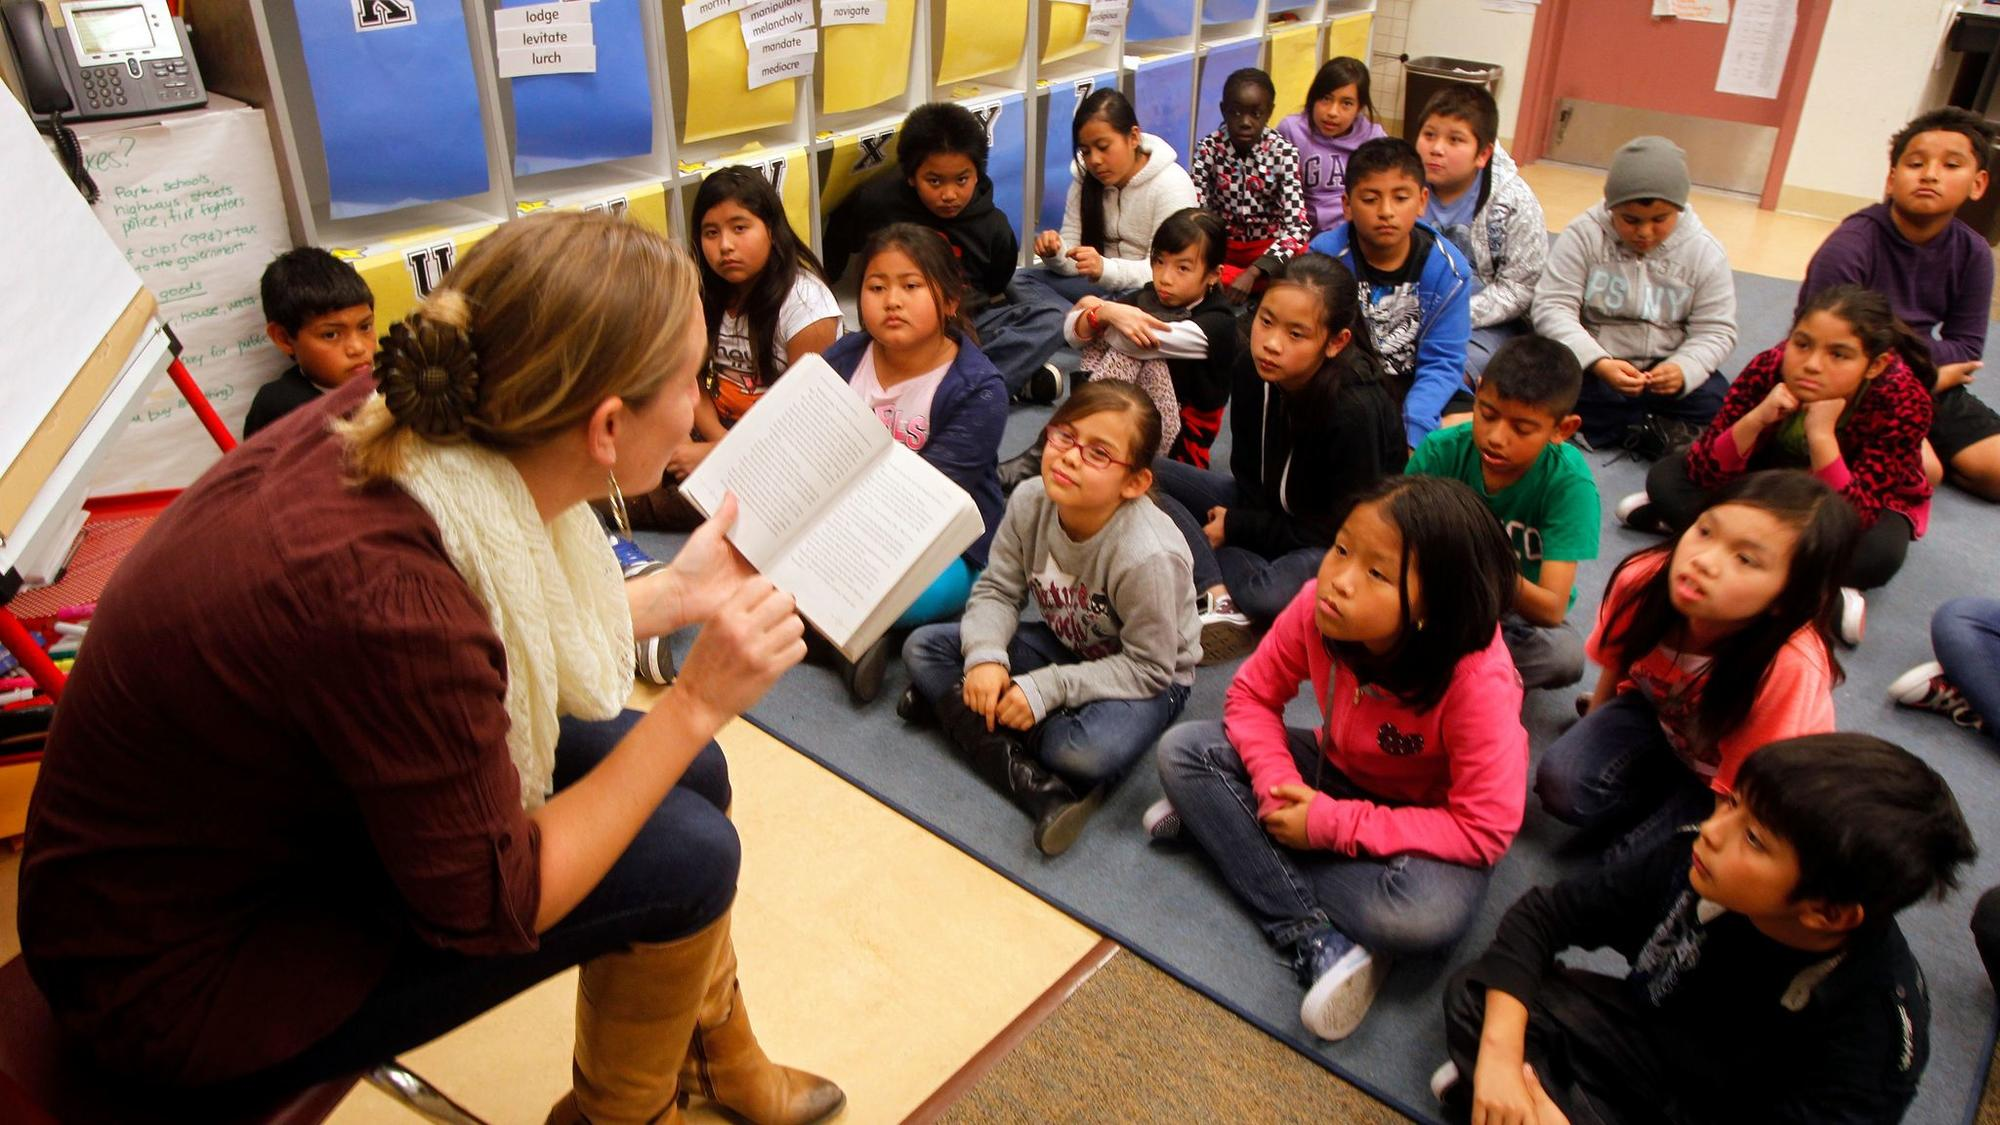 Tina Rasori's fourth- and fifth-grade combination class at Fay Elementary School in San Diego, shown